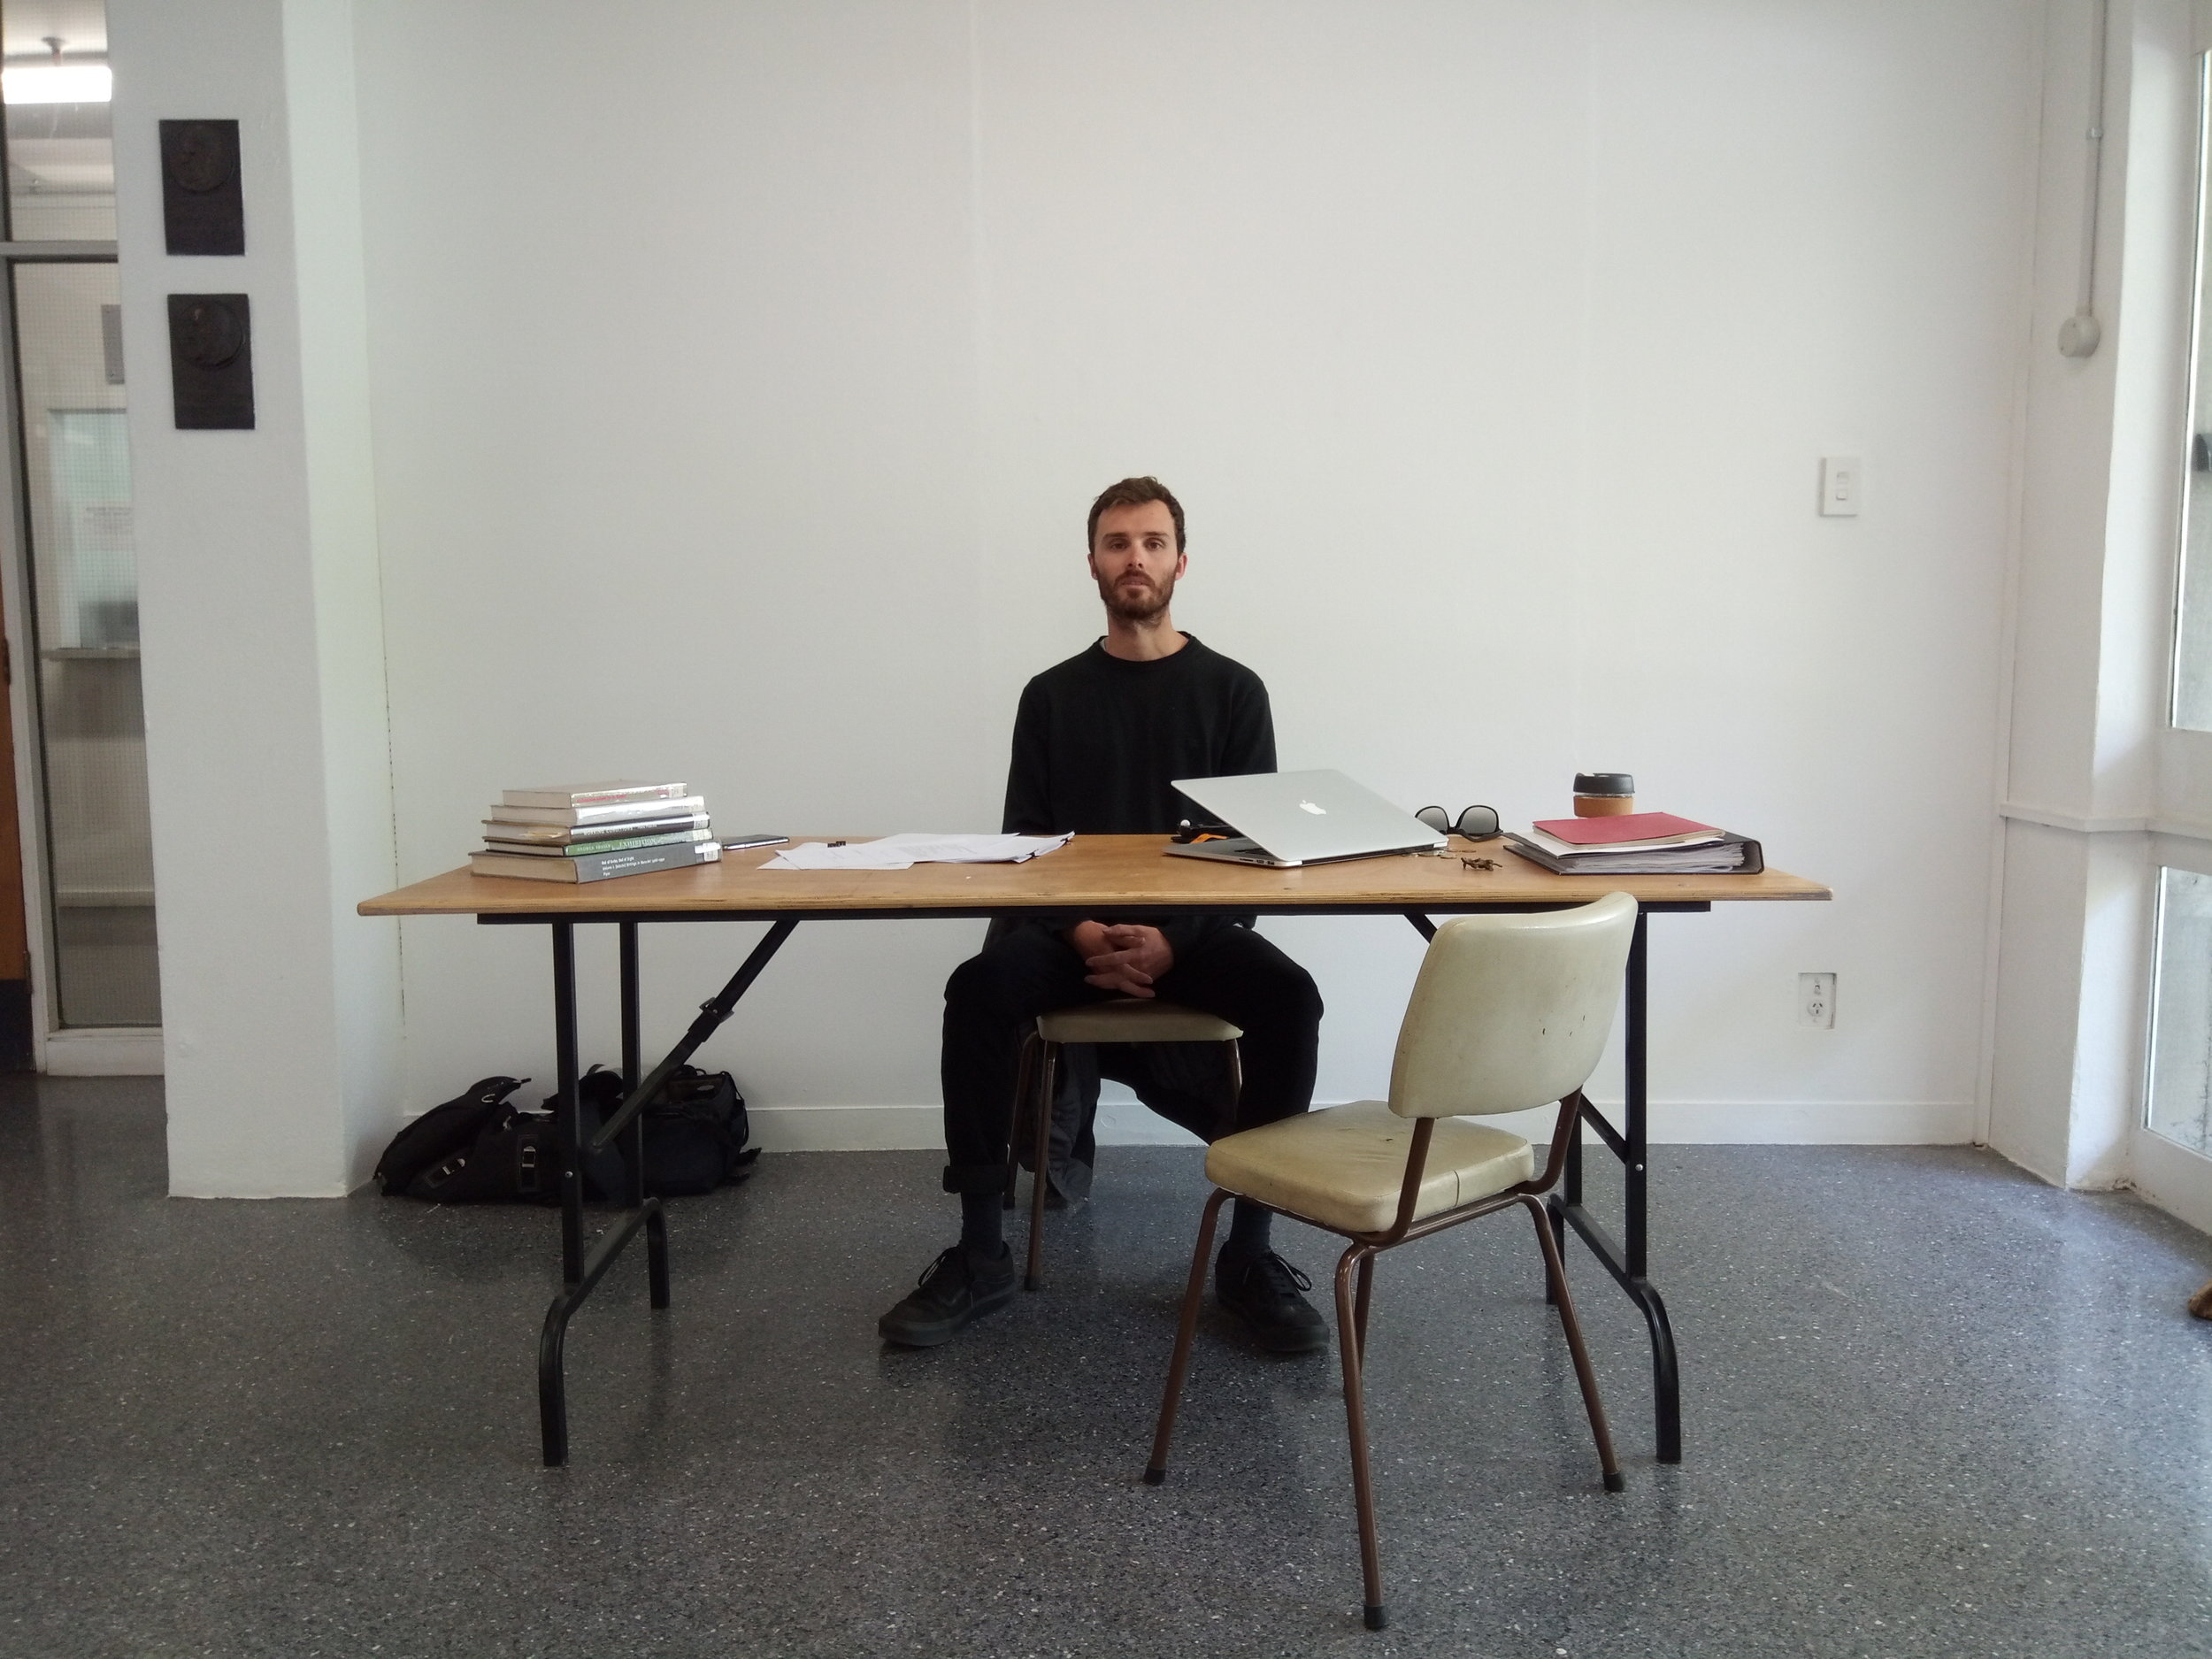 Durational Performance Office hours Monday 29th October - Monday 5th November Foyer, Elam School of Fine Art